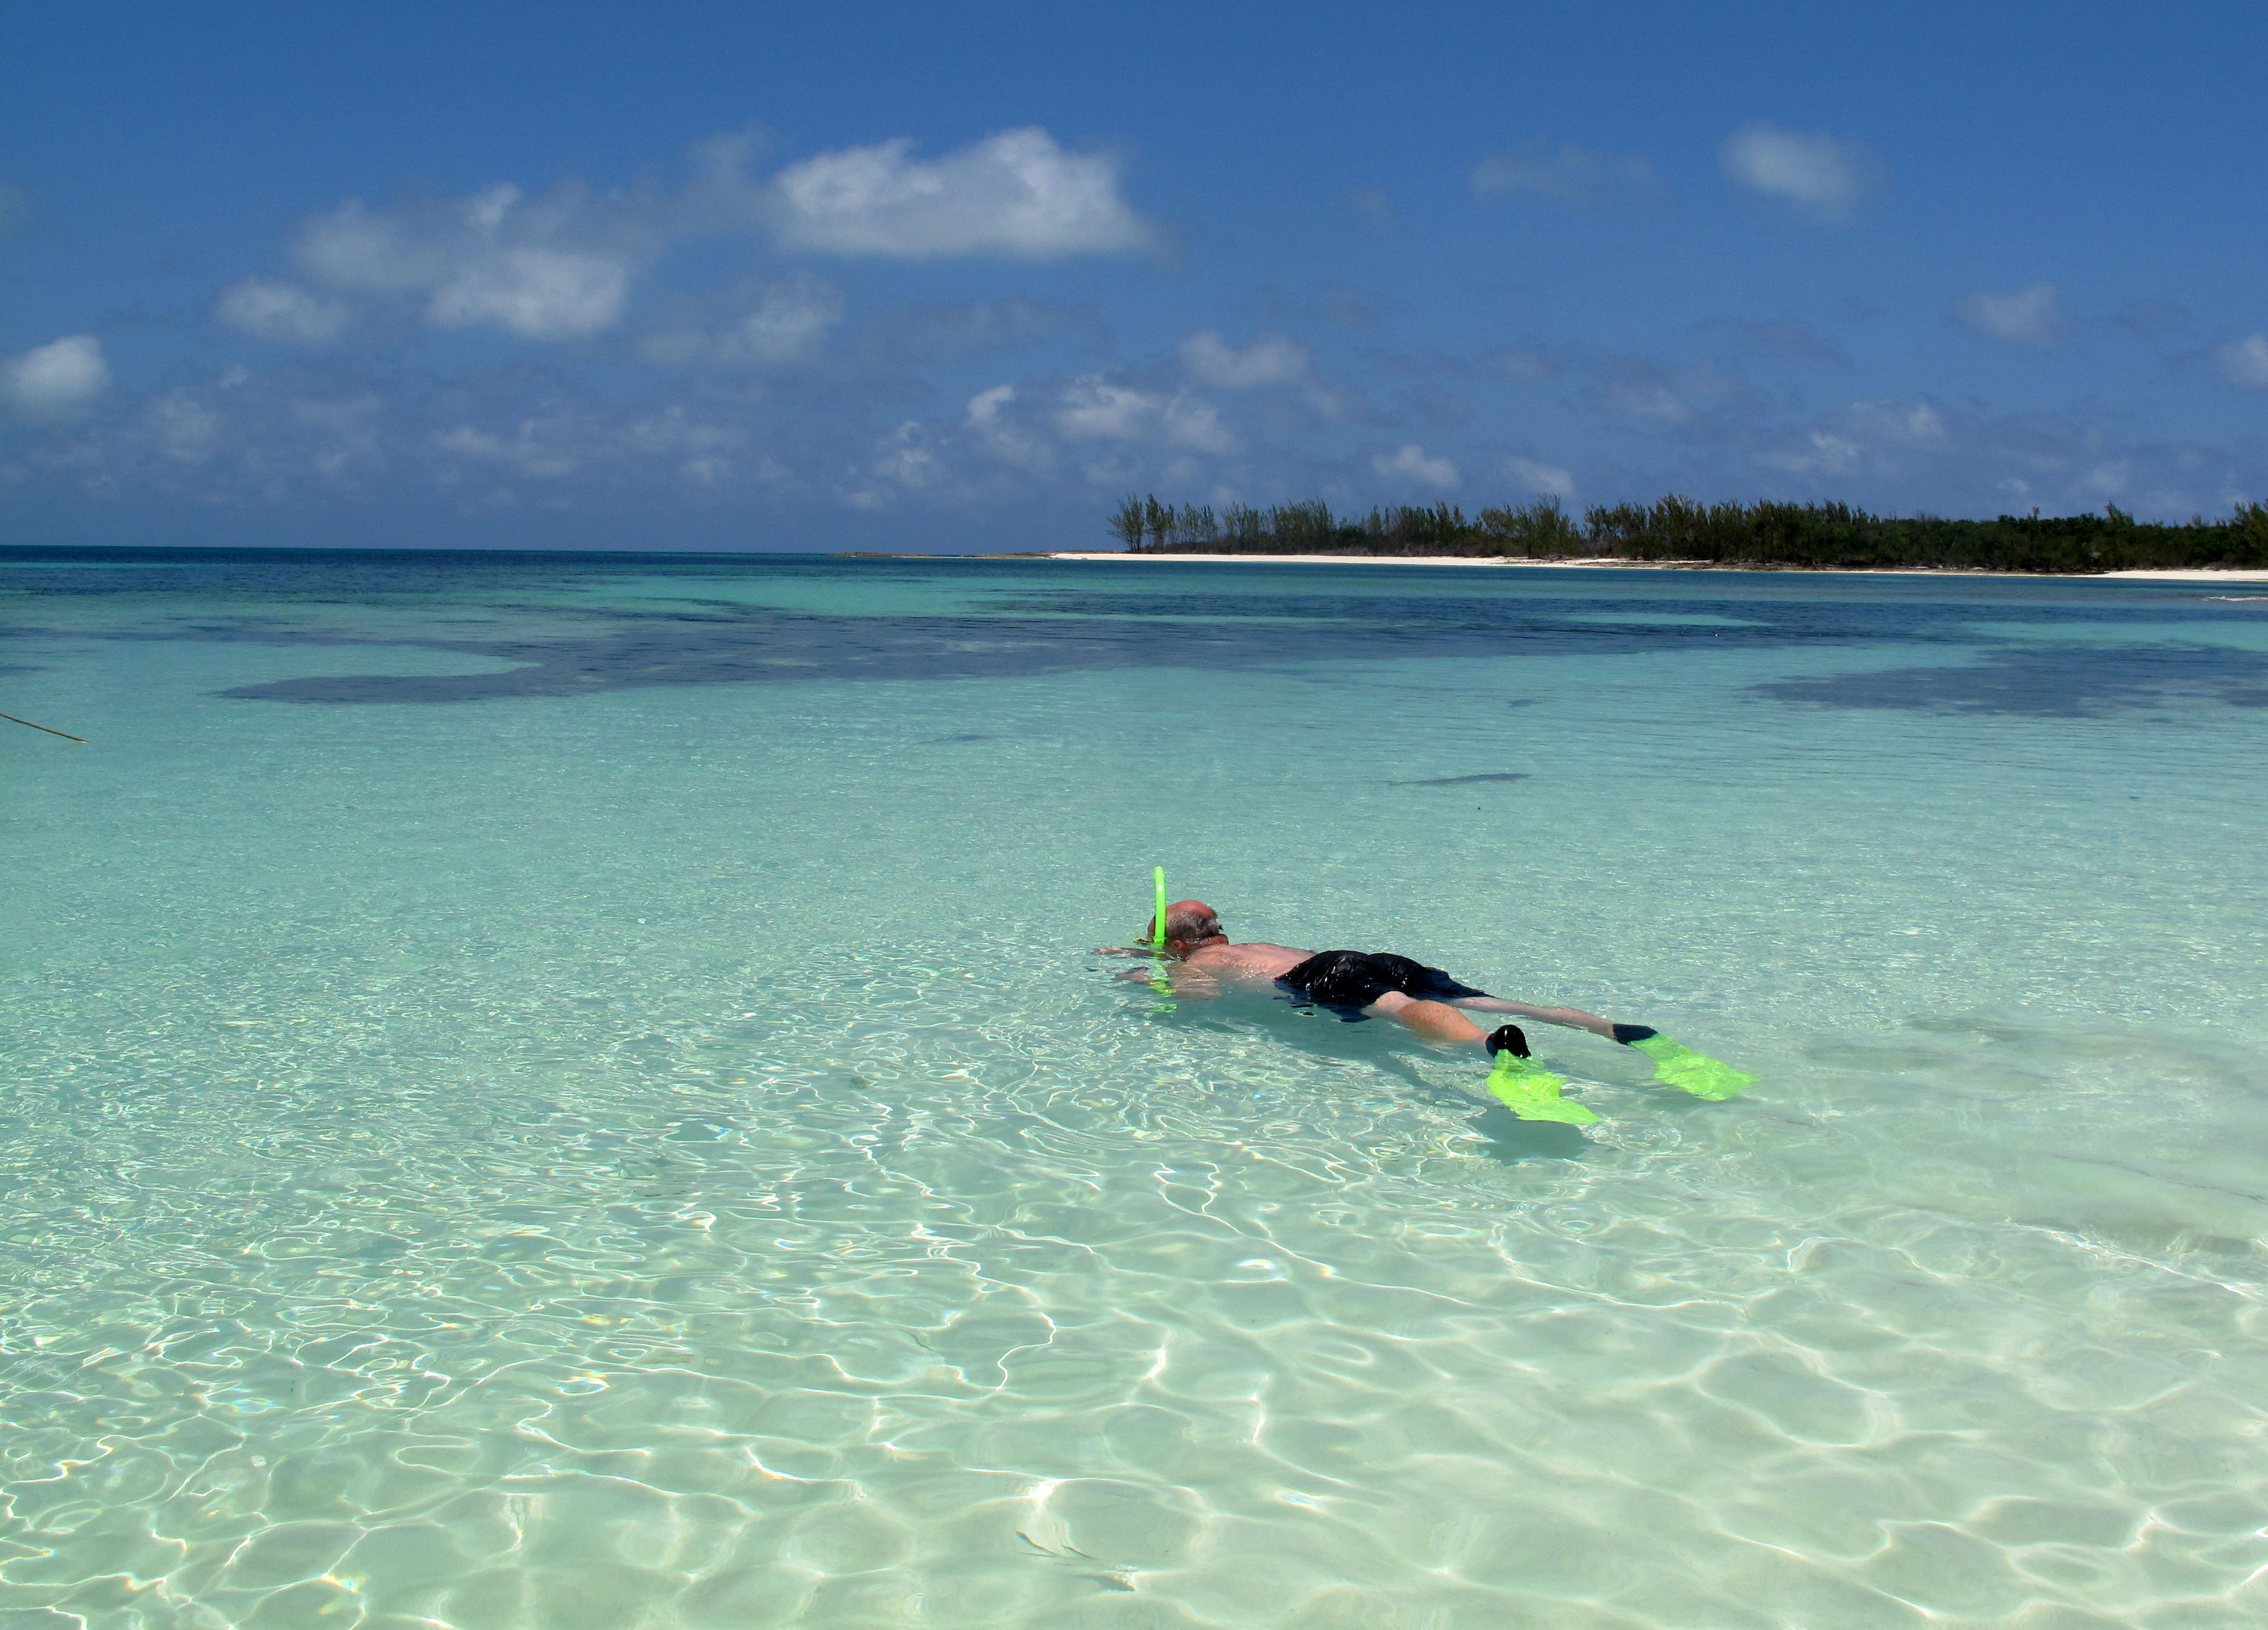 House rentals green turtle cay - Snorkeling At Munjack Cay